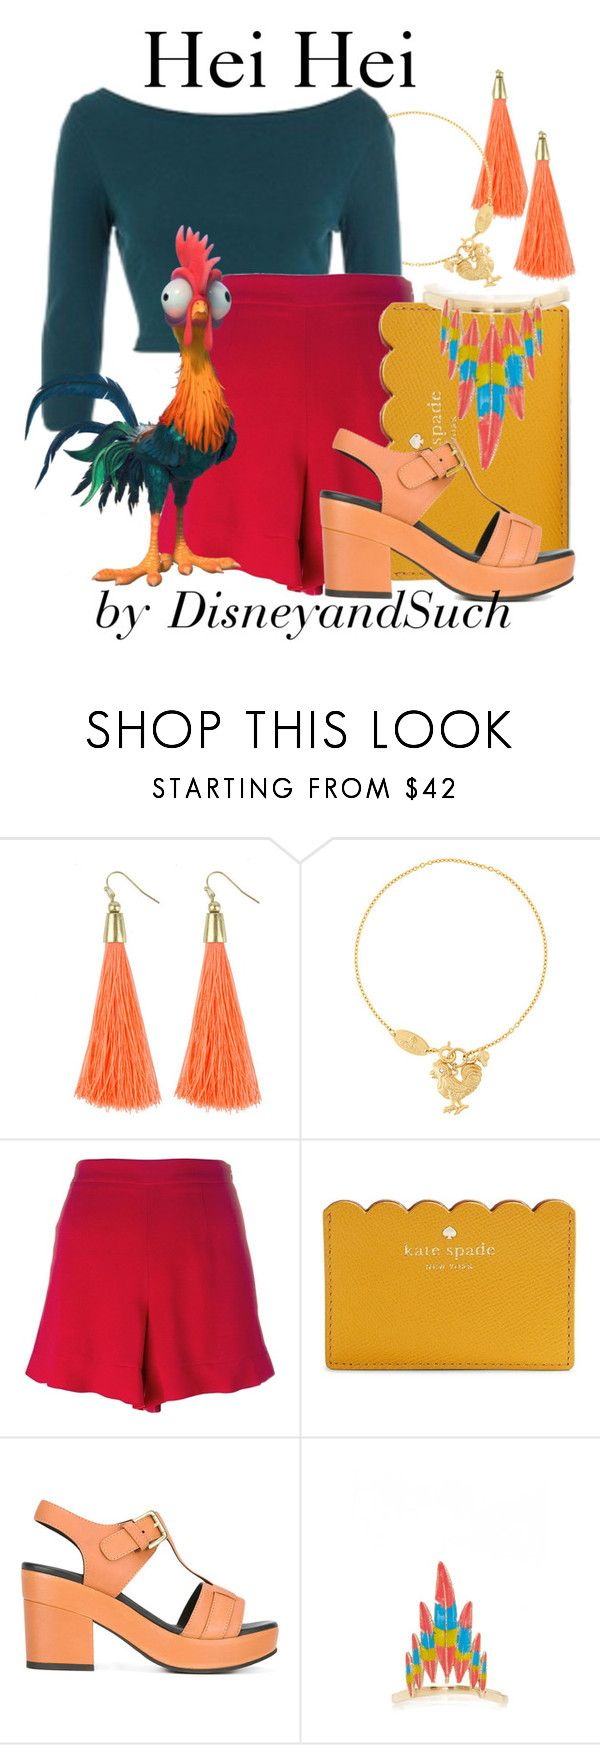 """""""Hei Hei"""" by disneyandsuch ❤ liked on Polyvore featuring Vivienne Westwood, ASOS, RED Valentino, Kate Spade, Cotélac, Luis Morais, disney, disneybound, moana and WhereIsMySuperSuit"""